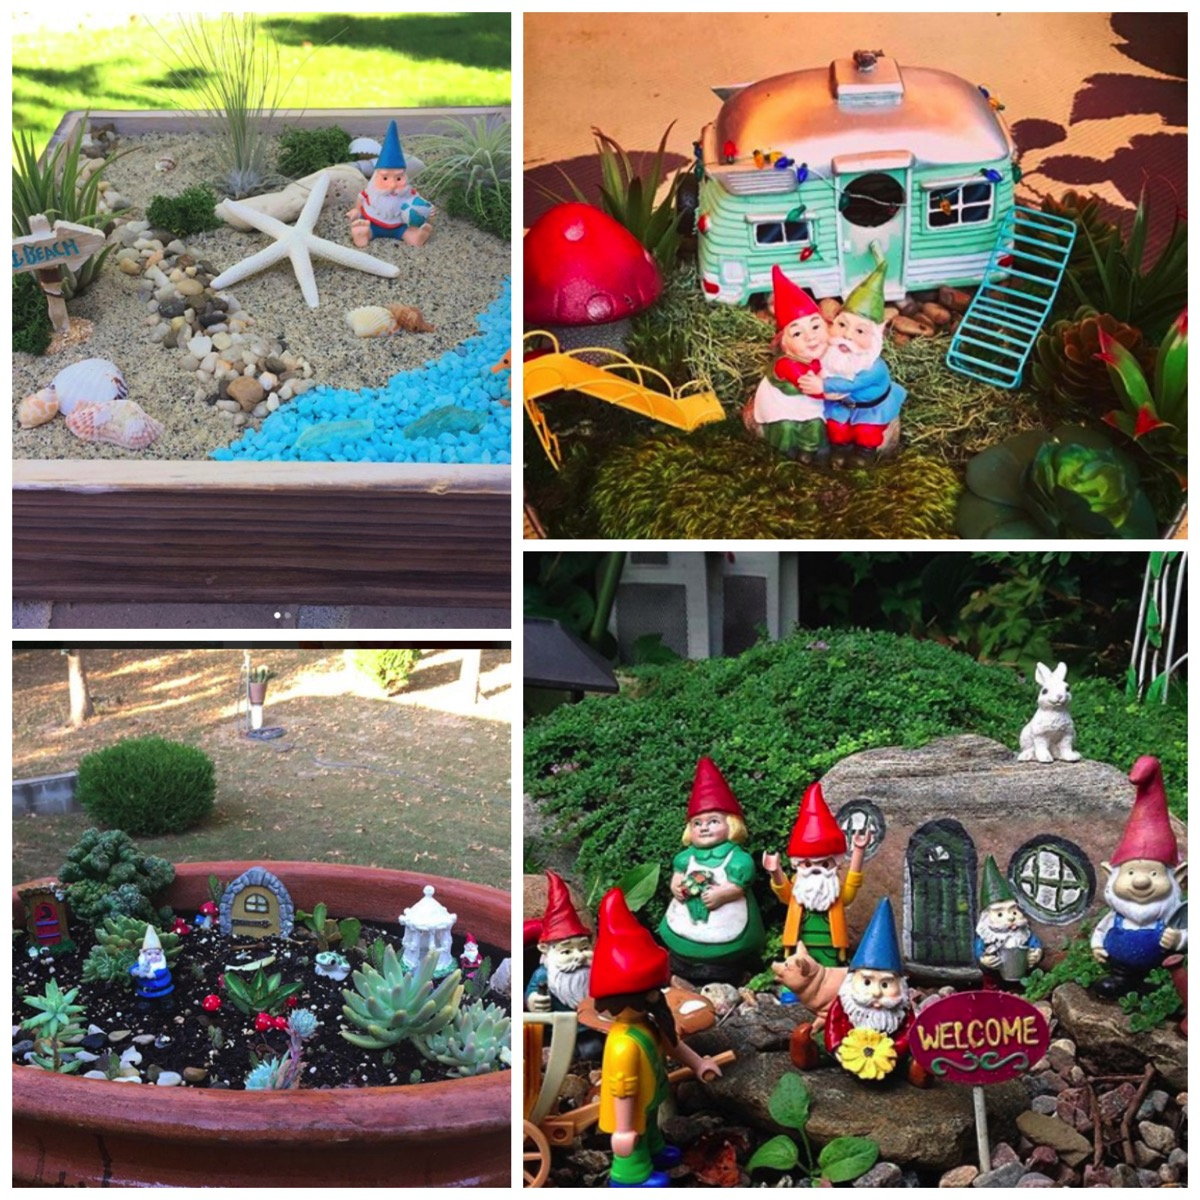 Beach gnome garden idea and married gnomes